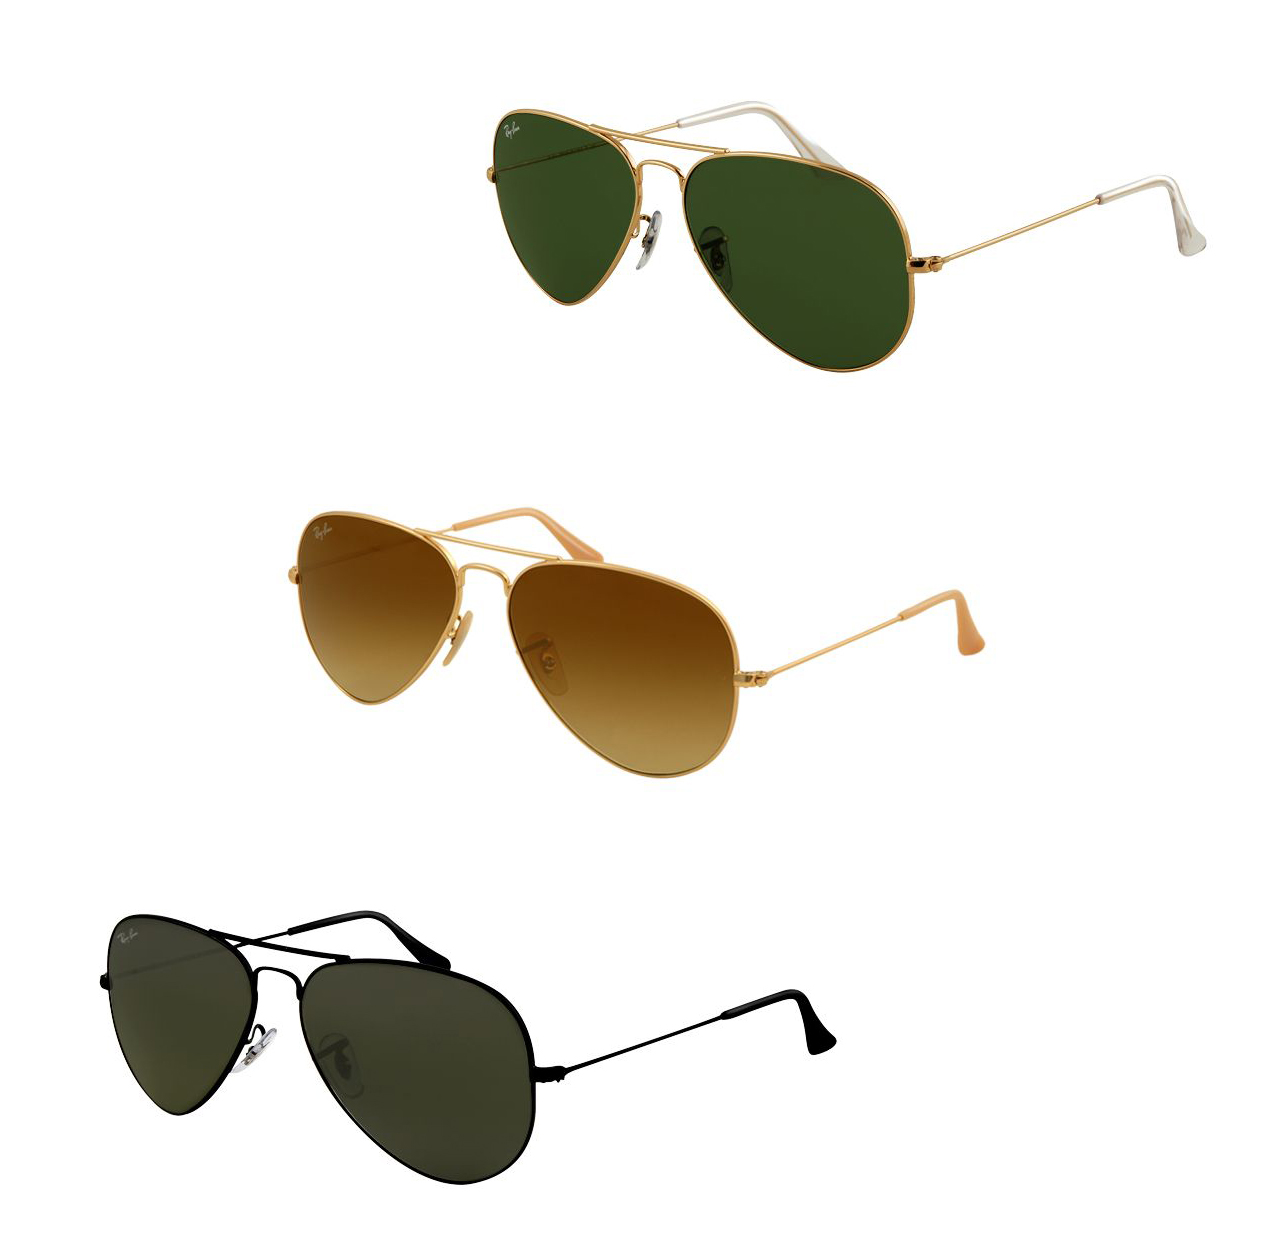 Ray-Ban Aviator Large Metal Sunglasses RB3025 FREE S H RB3025-9064V8-58,  RB3025-004-58-62, RB3025-L0205-58, RB3025-112-19-58, RB3025-001-57-62, ... 44a23f3bf7